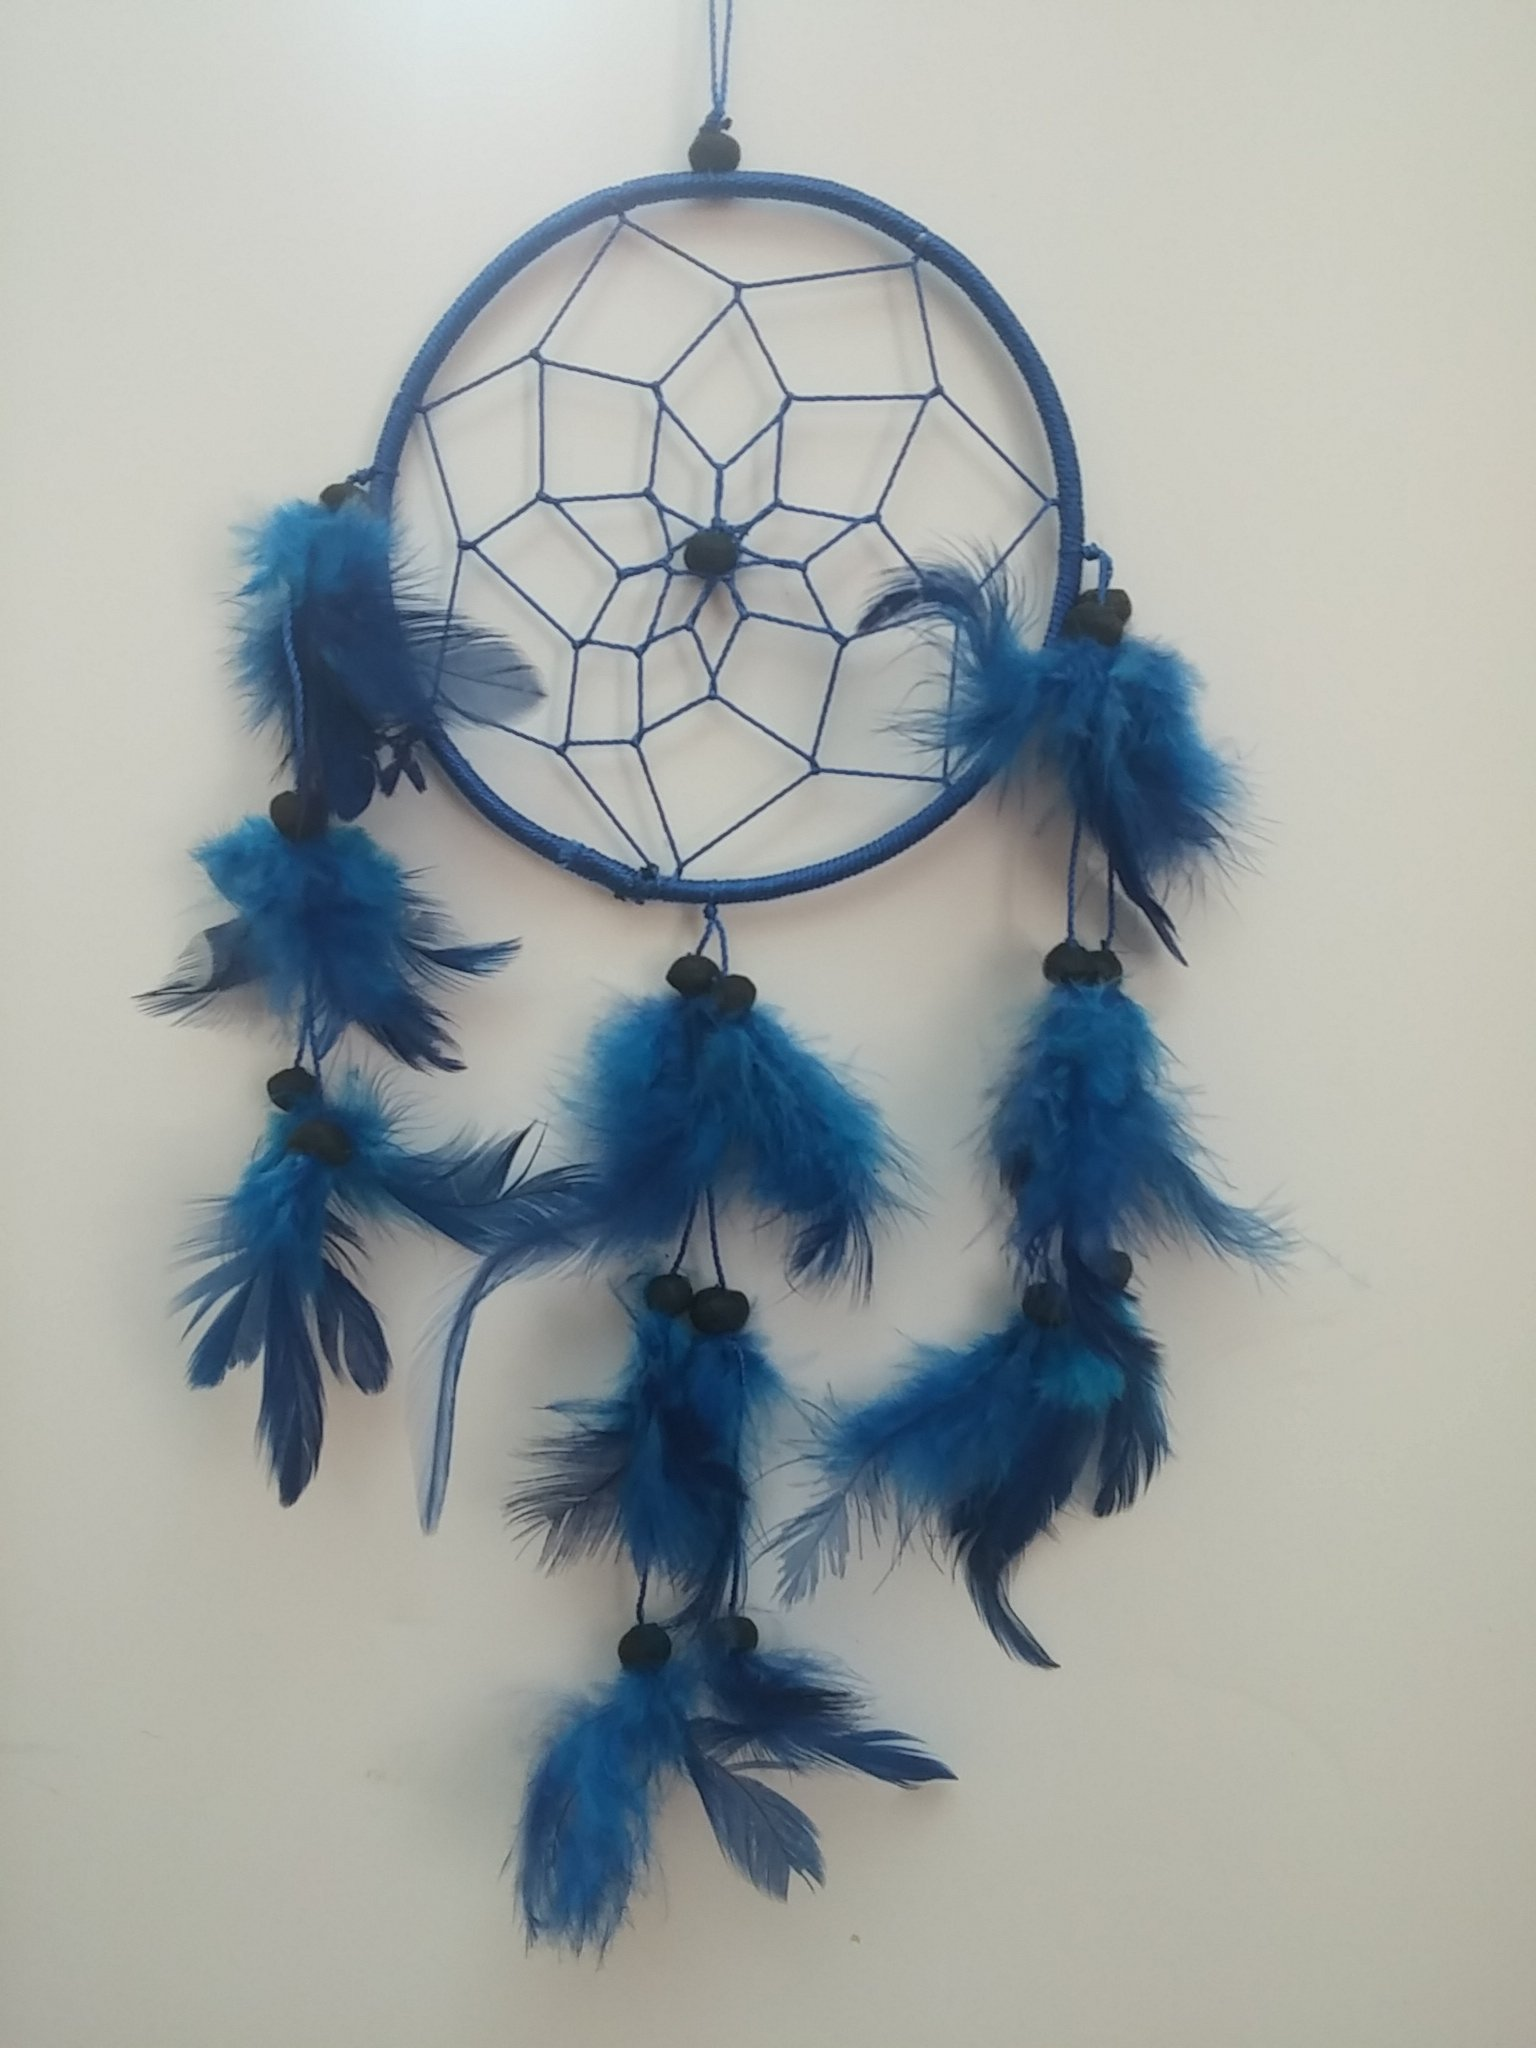 GYPSY PALACE Fantastic Dreamcatcher in Dark Blue-Handcrafted Beads and Feathers-Hangs 12 inches Long with 4 inch Diameter -A Great Gift